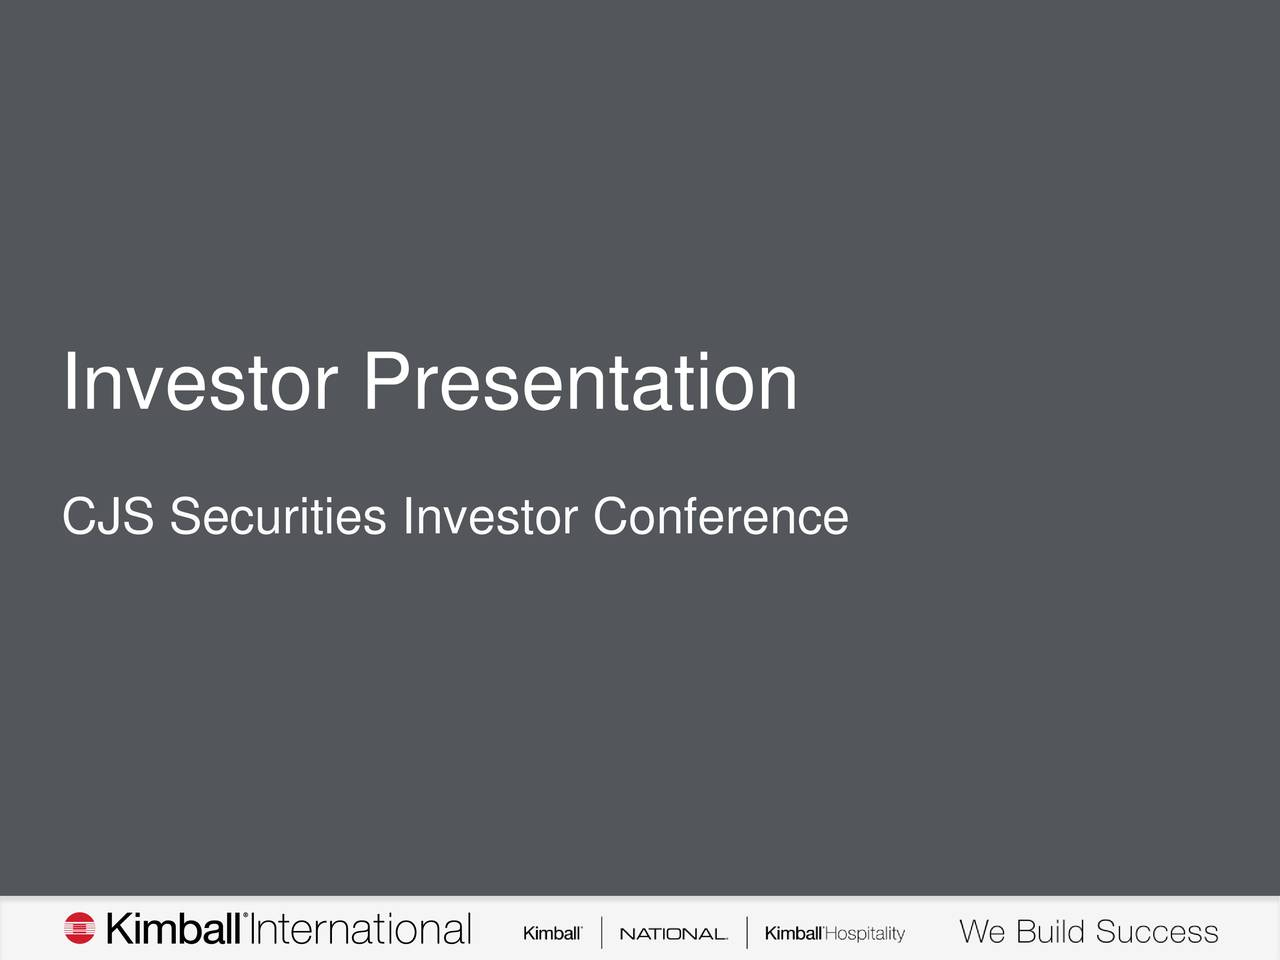 CJS Securities Investor Conference